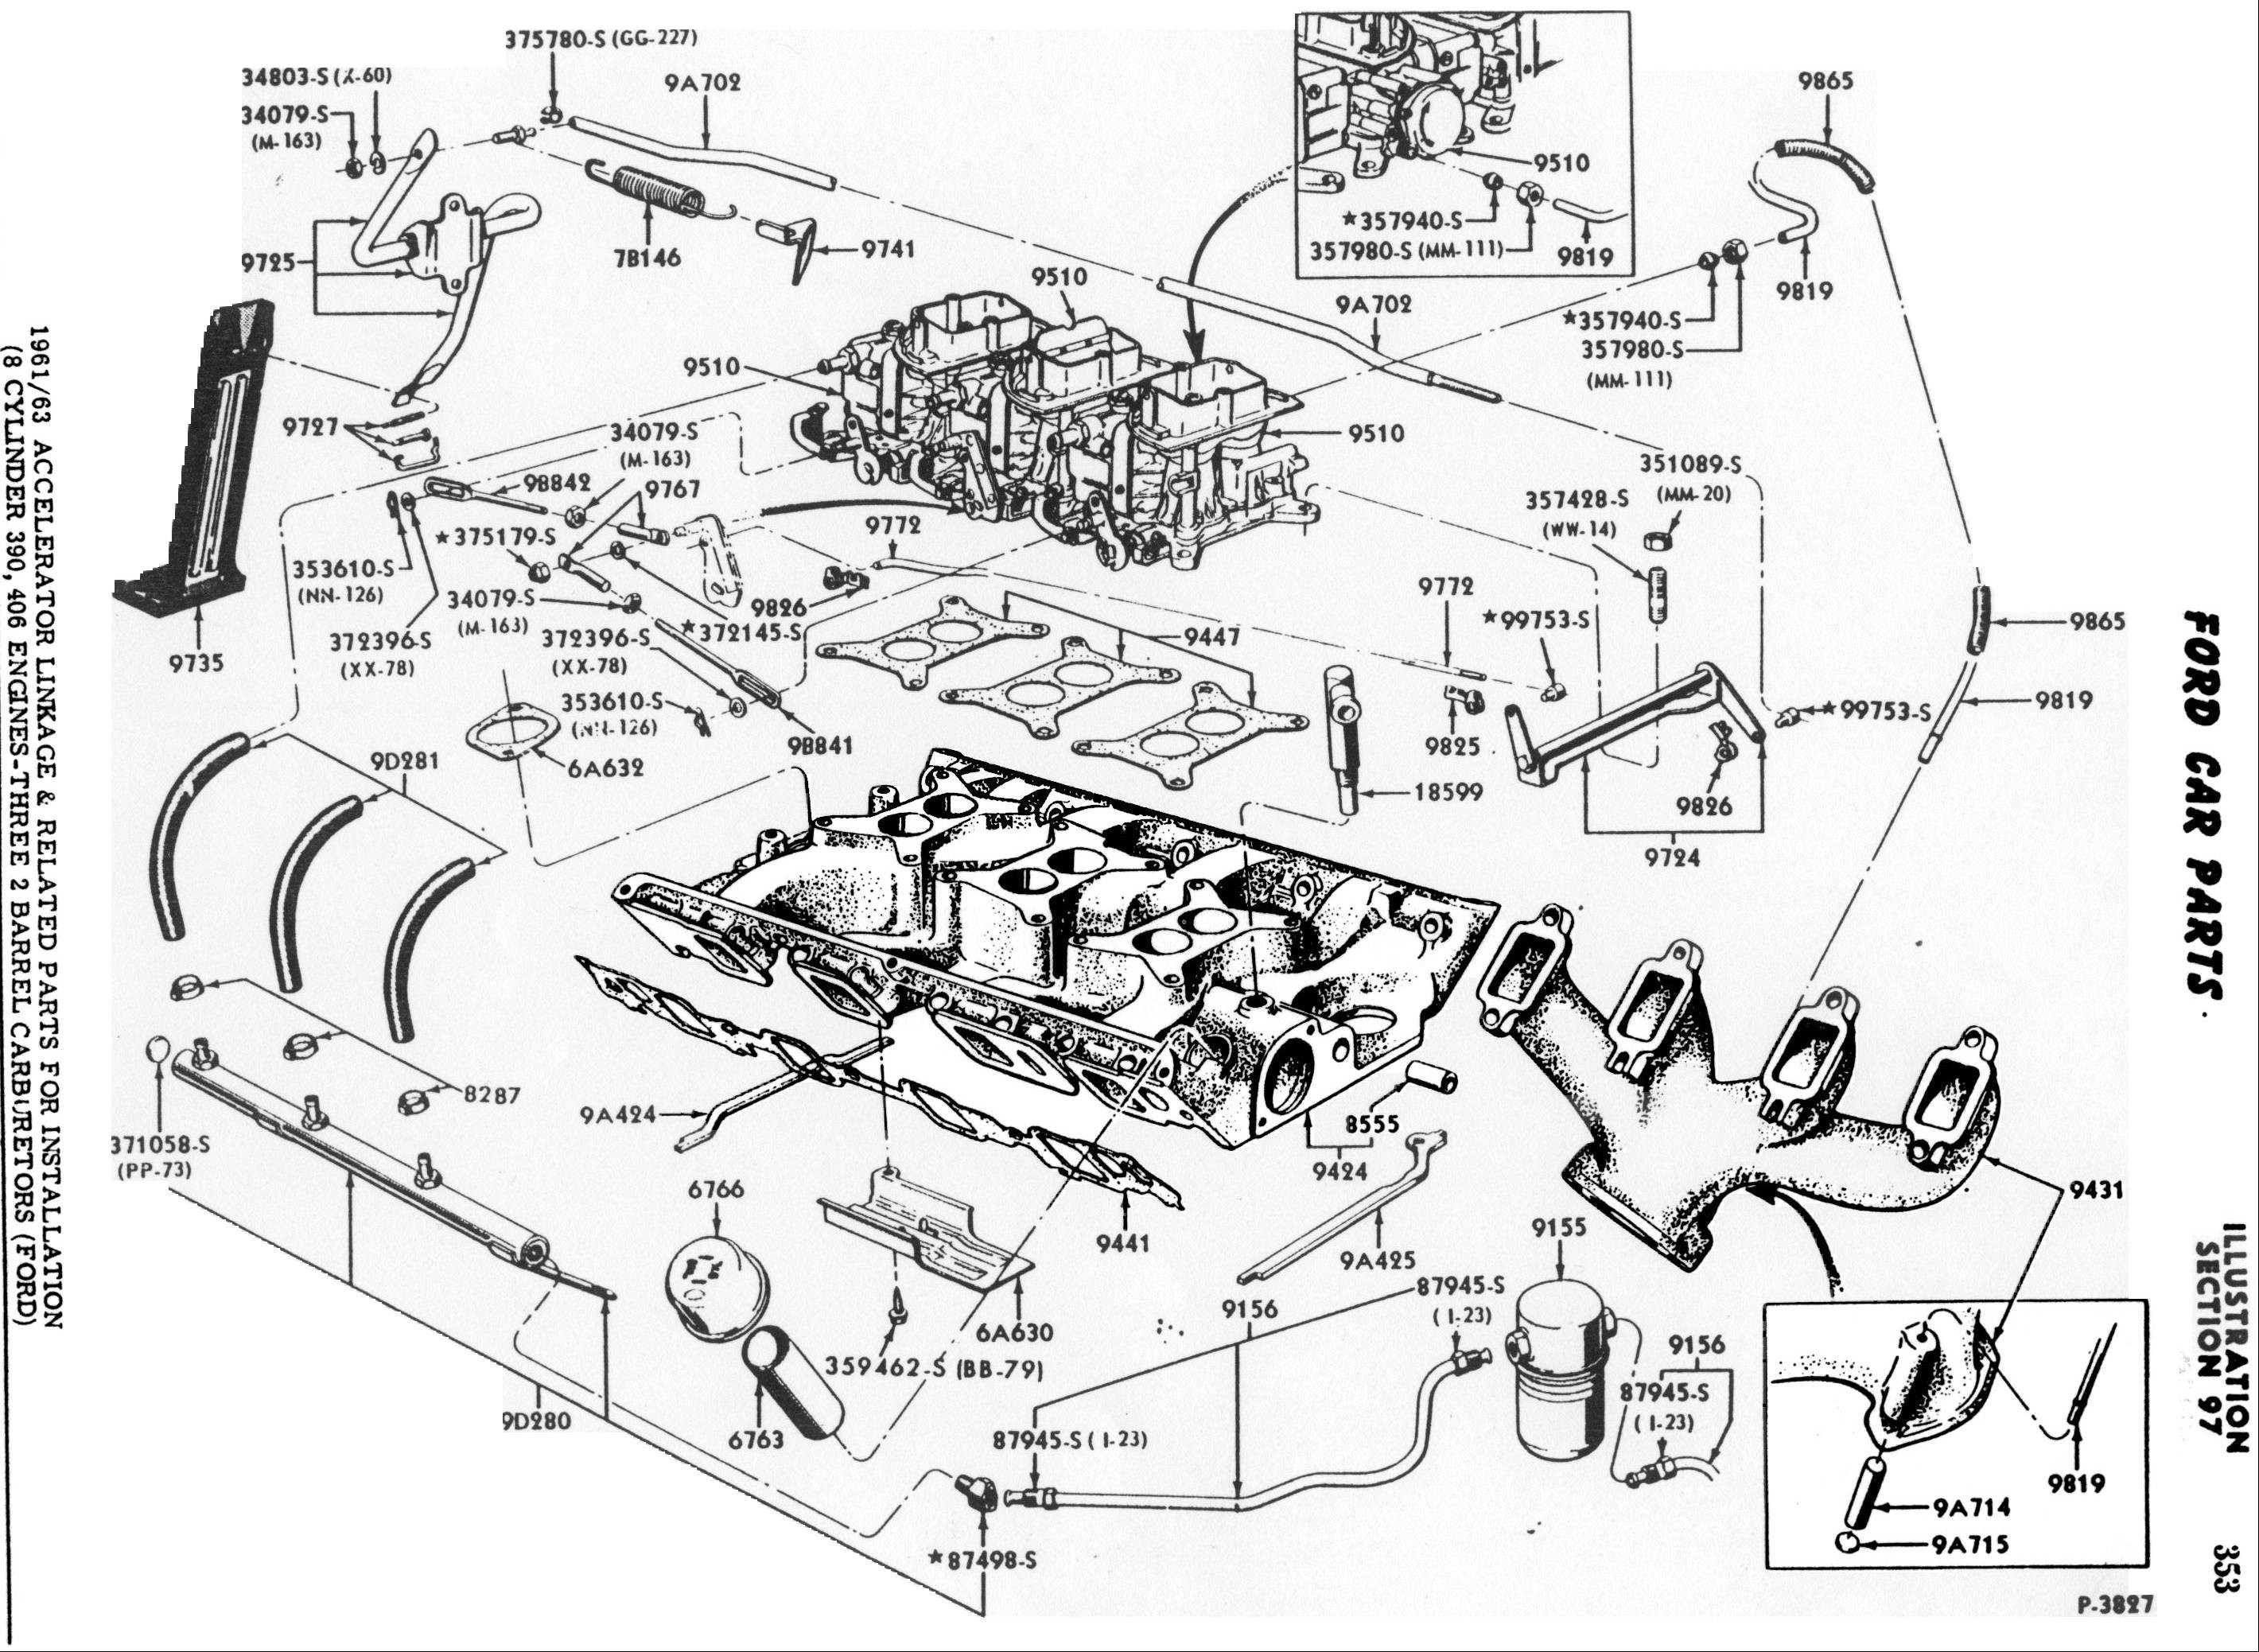 460 ford engine spark plug wire diagram